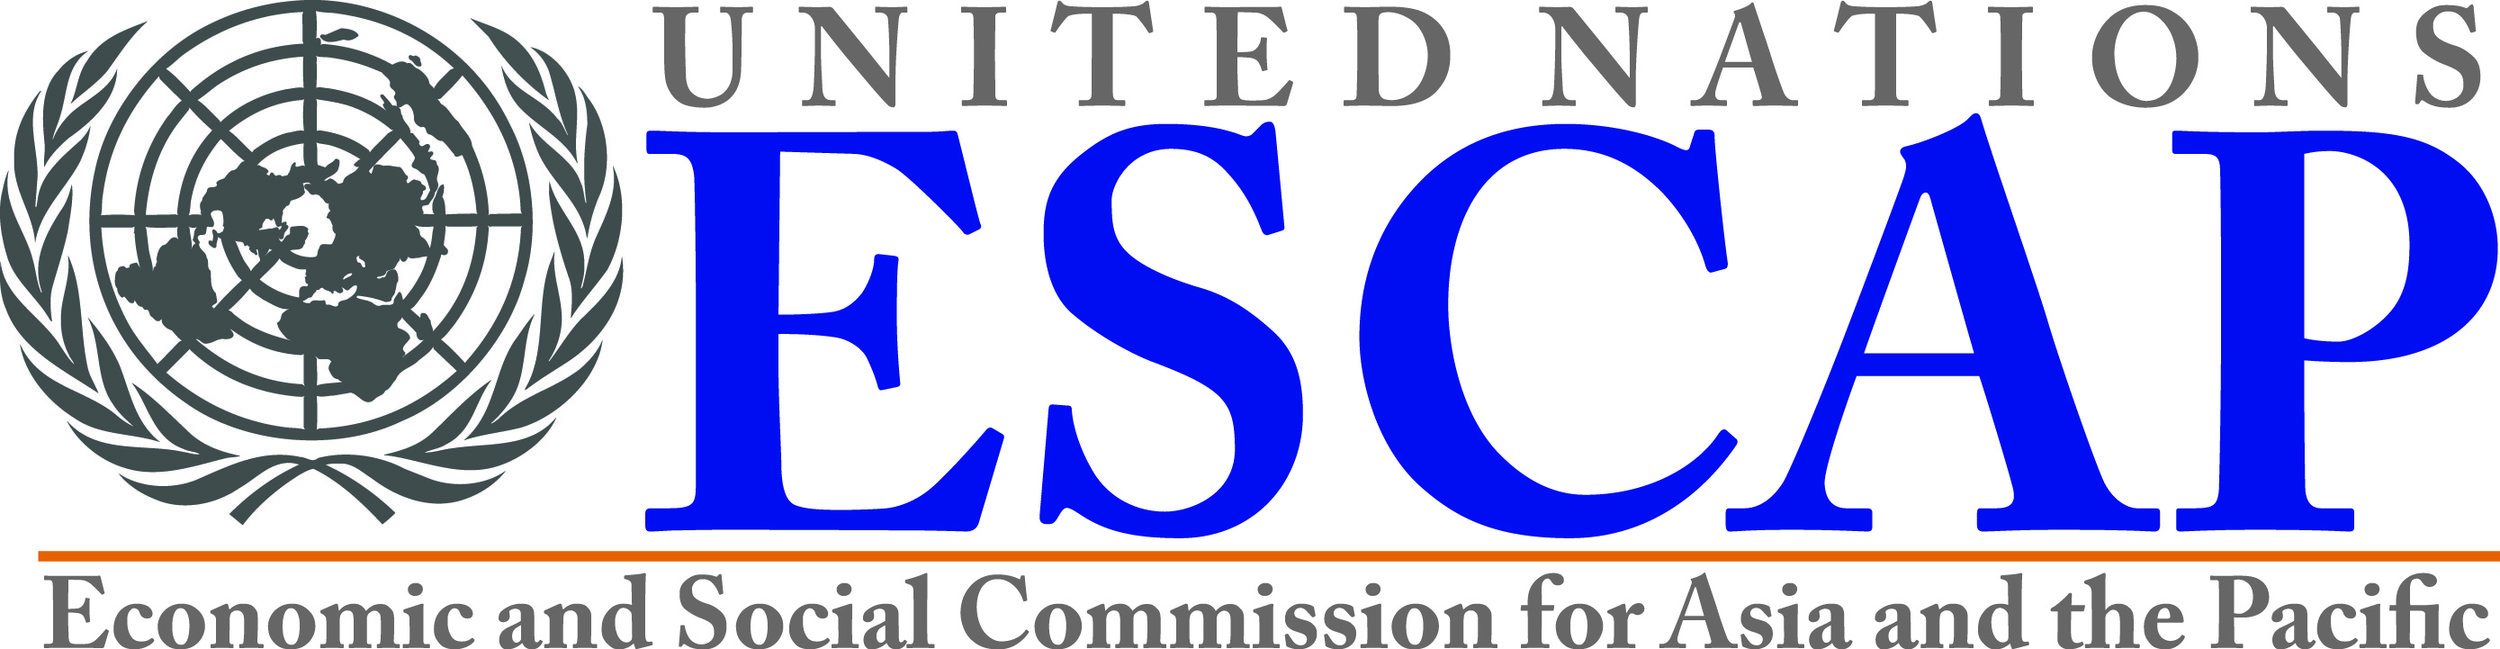 FINAL ESCAP LOGO 2008.jpg